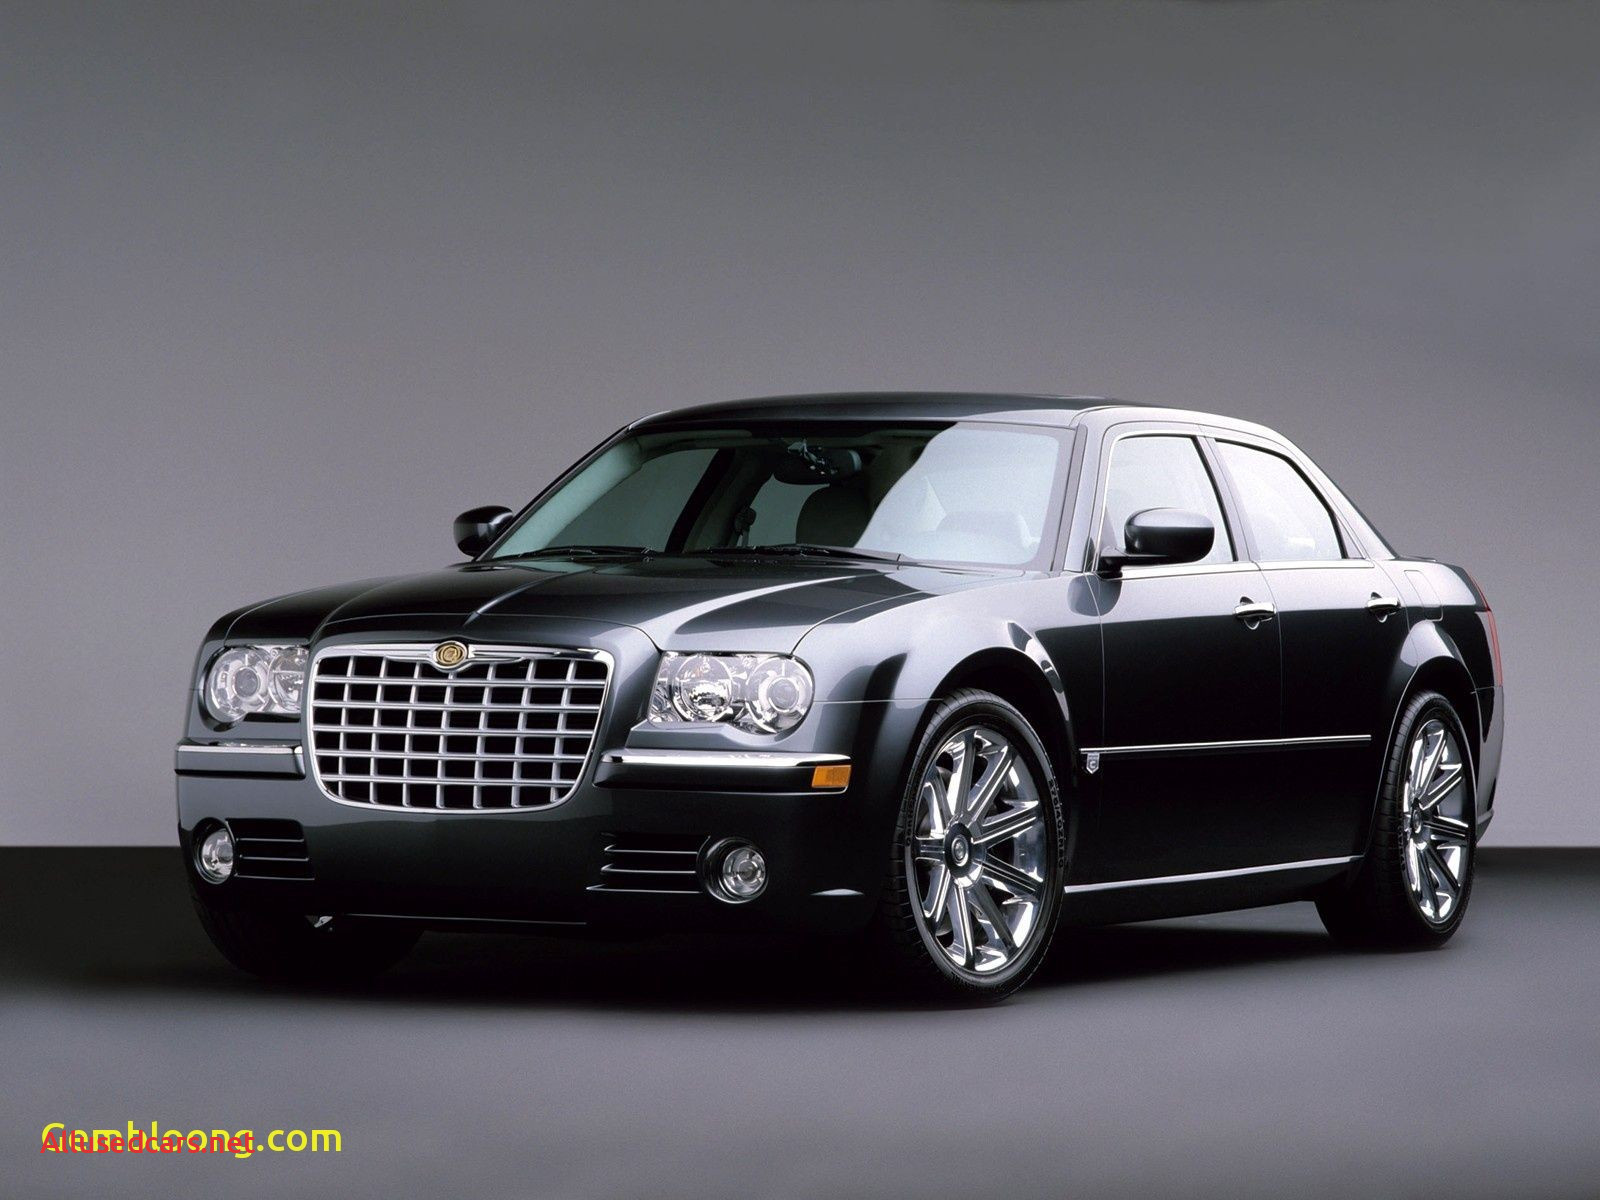 2011 Chrysler 300 Awesome All Used Cars